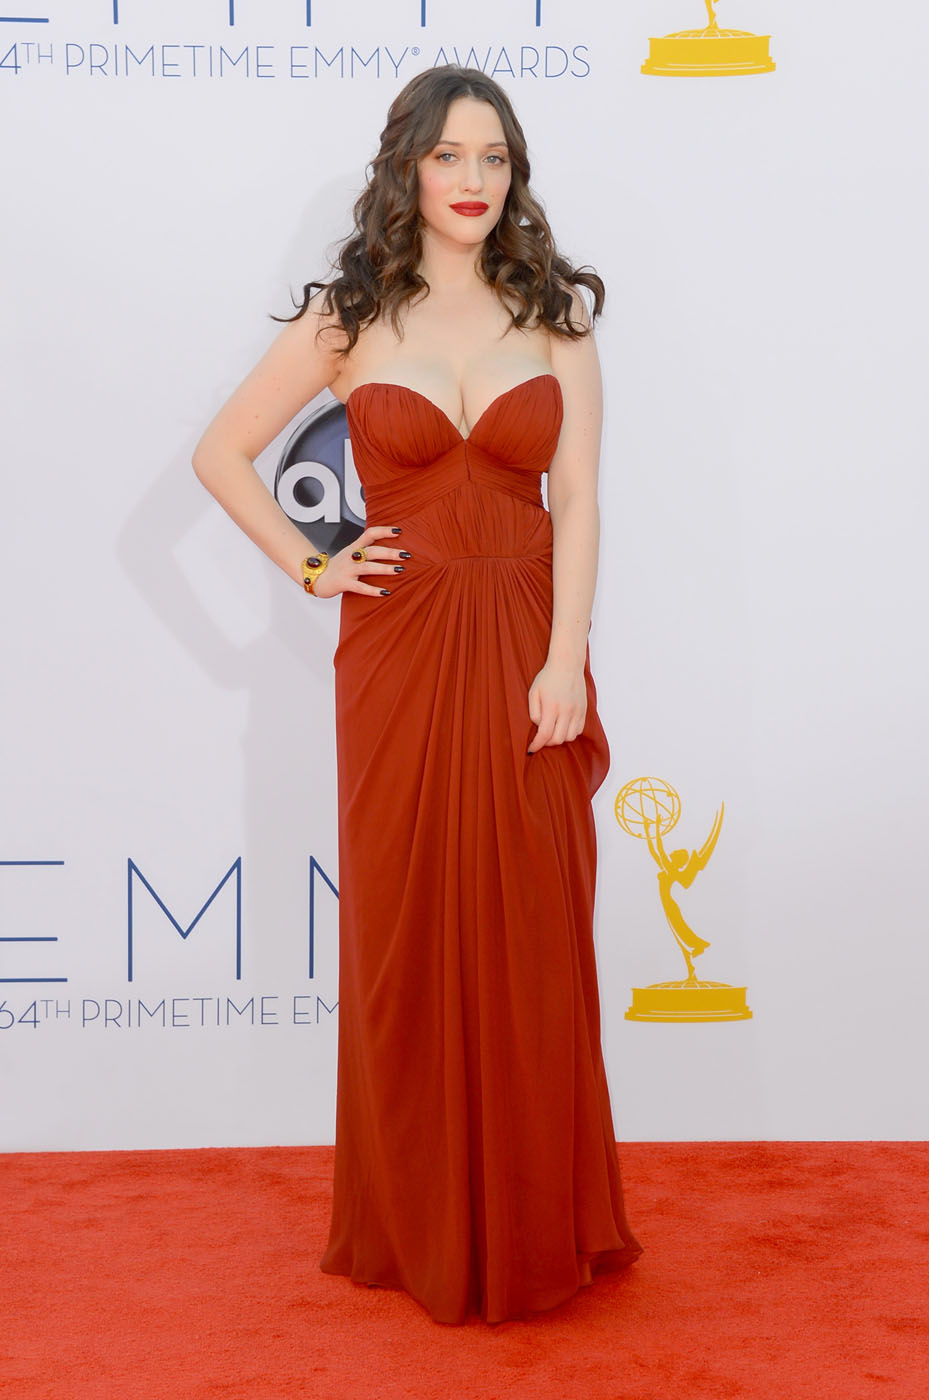 Kat Dennings  - 2012 Emmy Awards, Red Carpet Looks